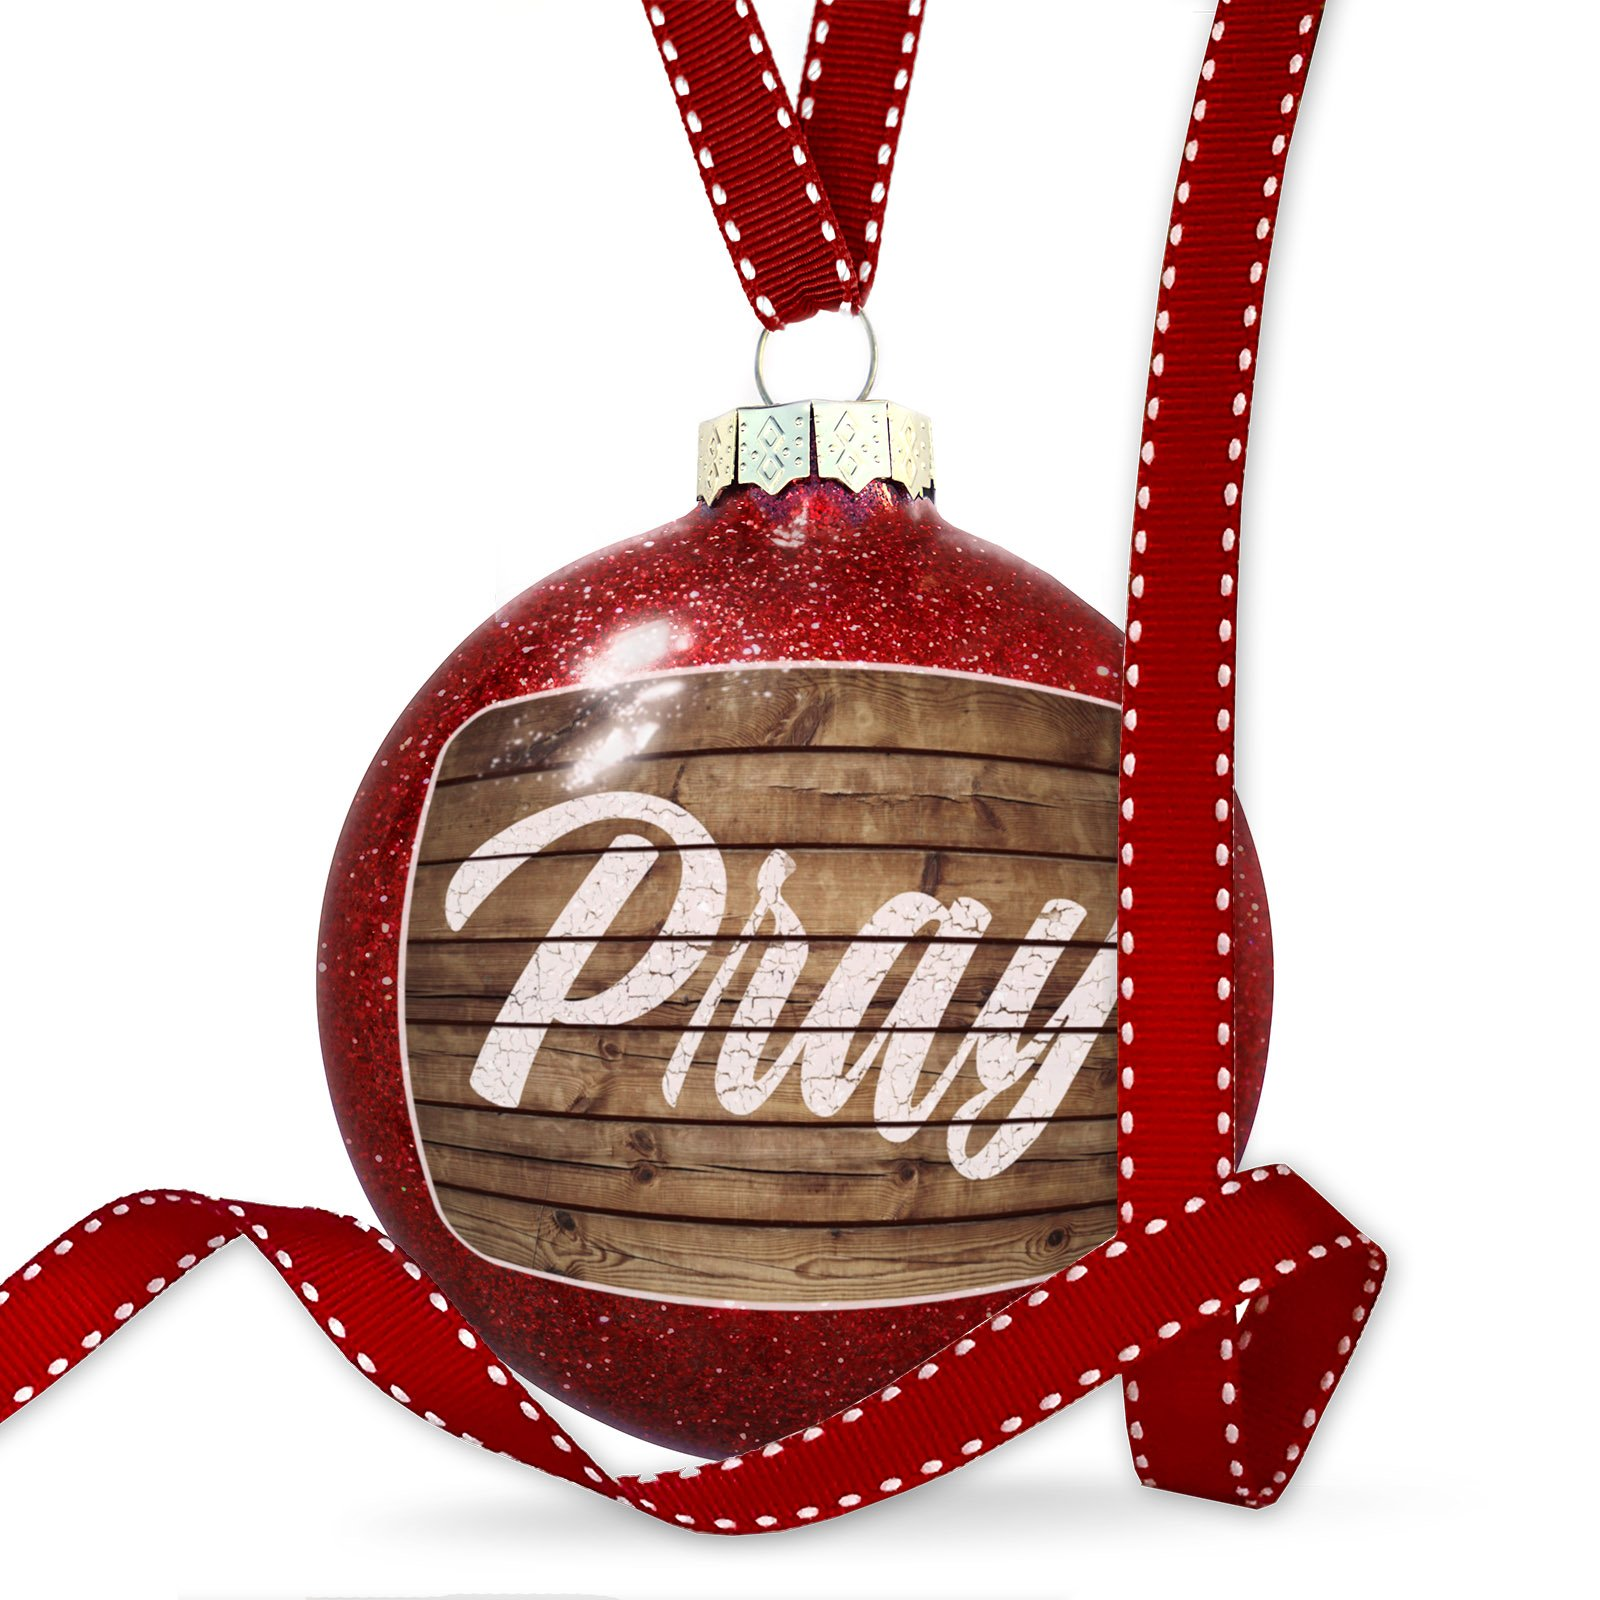 Christmas Decoration Painted Wood Pray, Hustle, Repeat Ornament